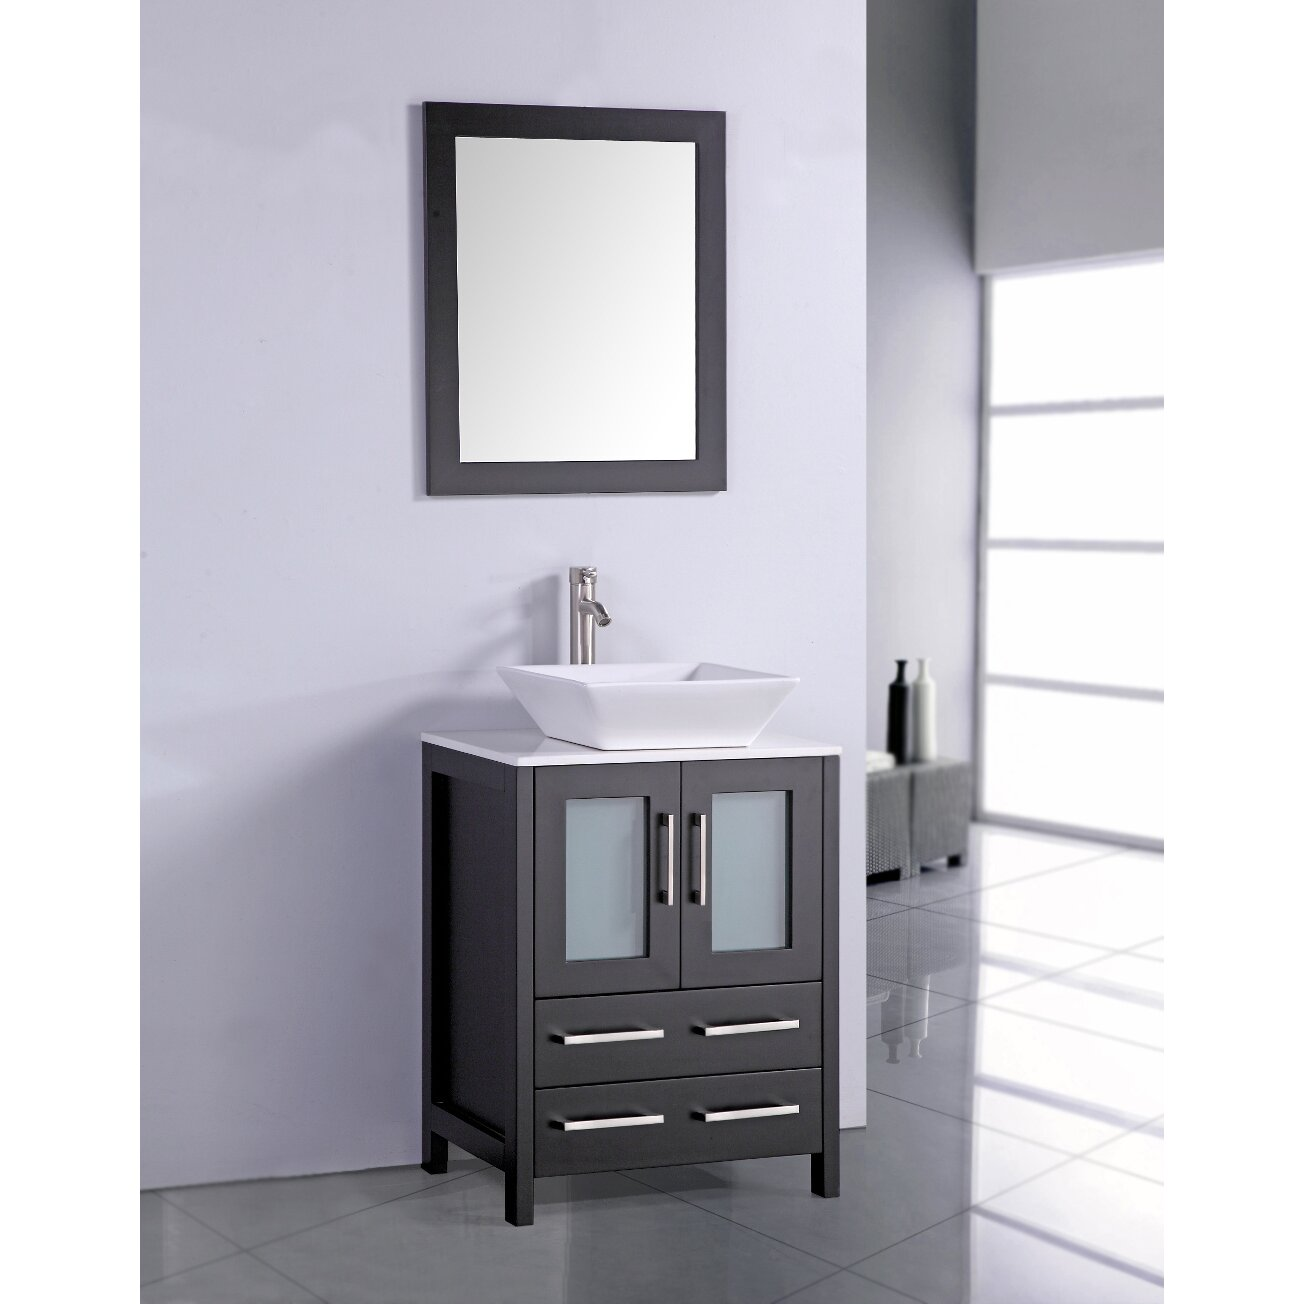 Legion furniture 24 single bathroom vanity set with for Legion furniture 30 inch bathroom vanity